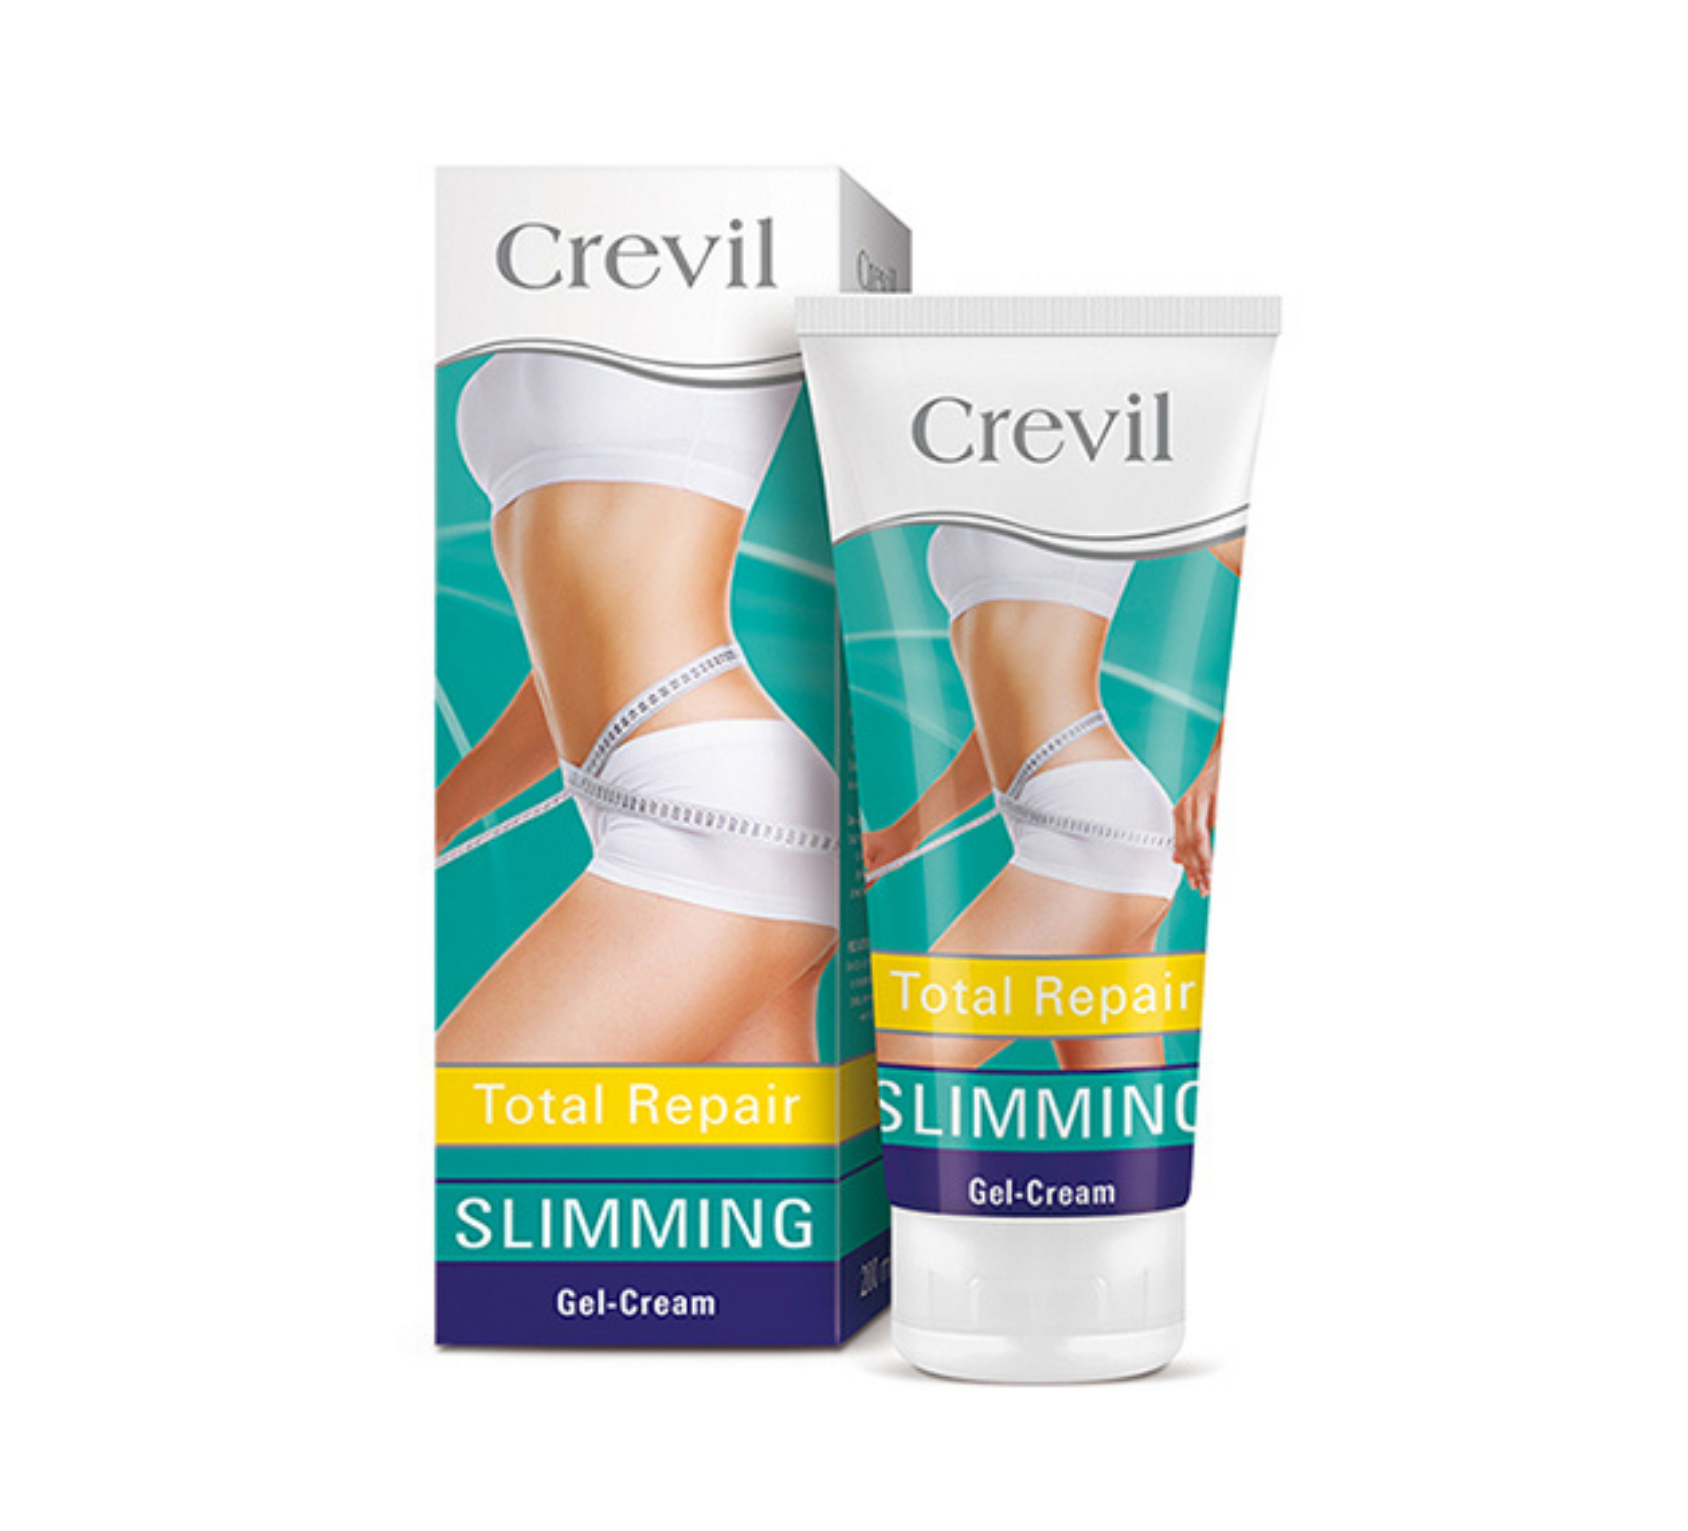 SLIMMING GEL - CREAM